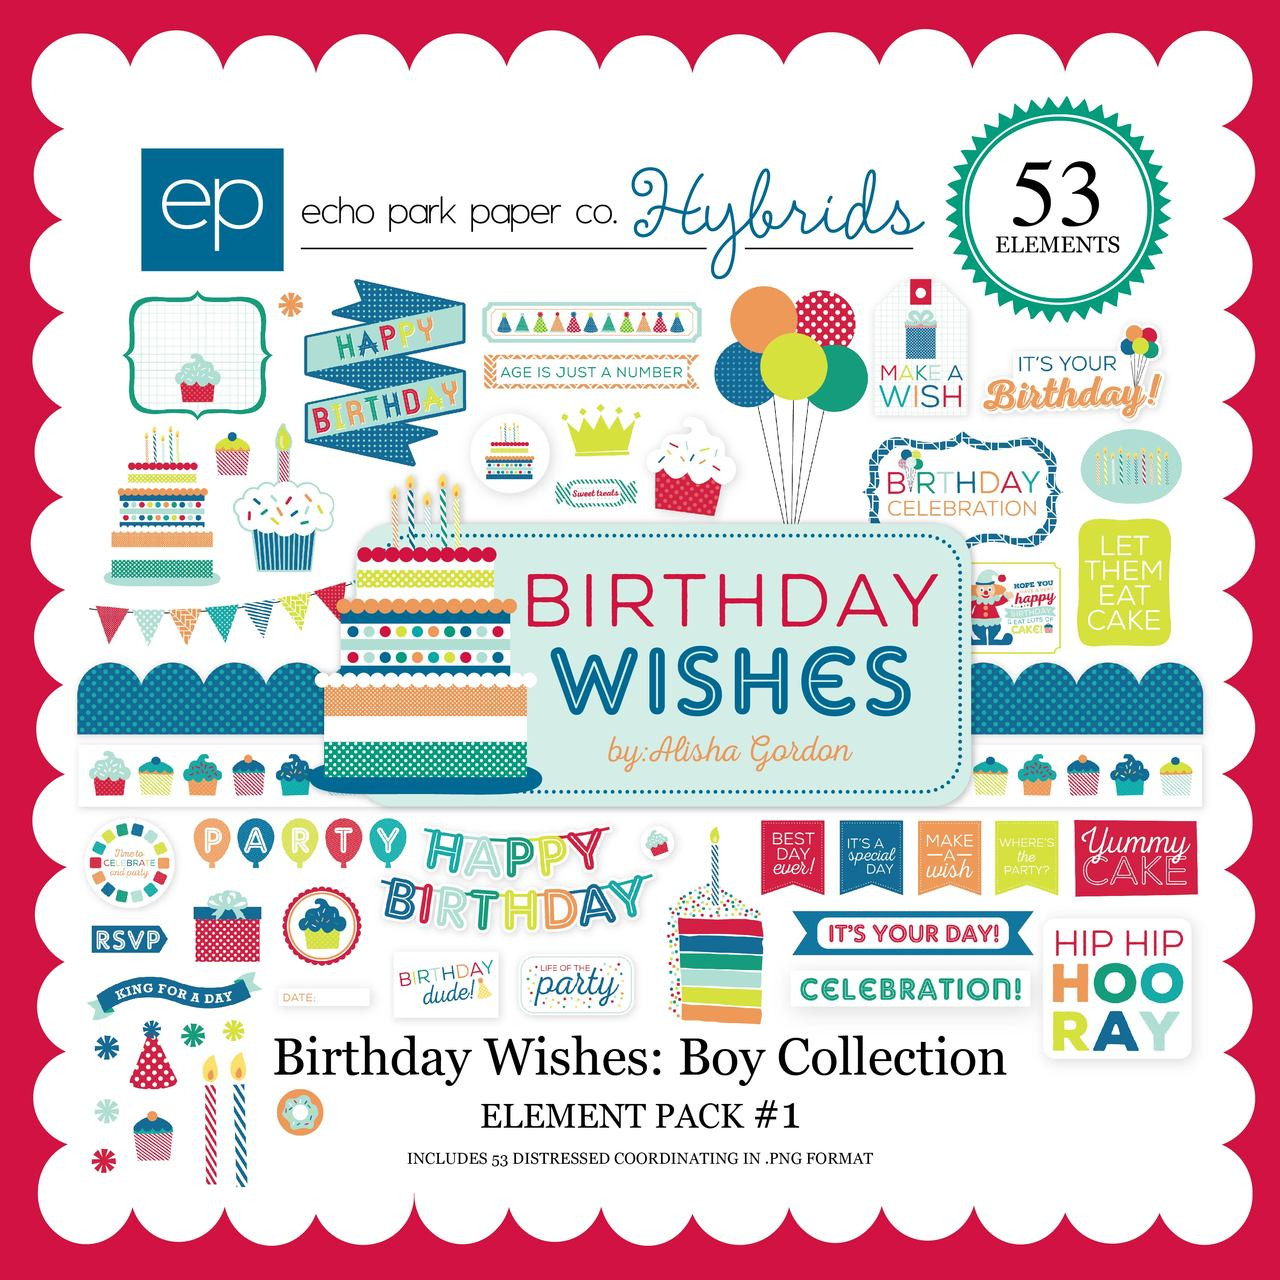 birthday wishes boy element pack 1 snap click supply co